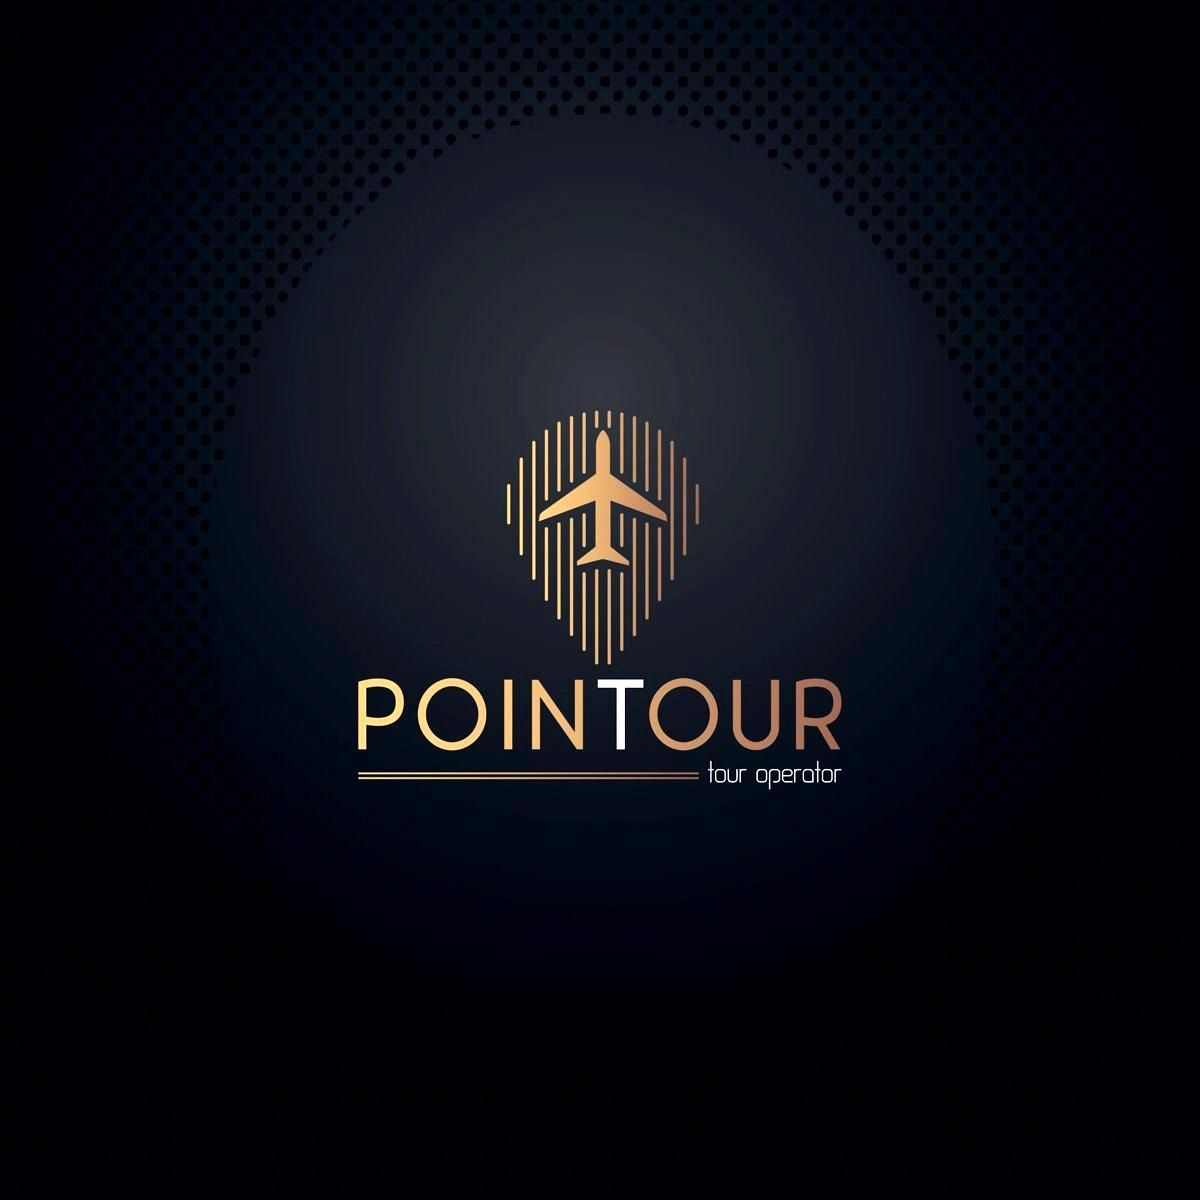 Tour tourism company logos created from gold effect navigation and plane vector design .EPS .JPG